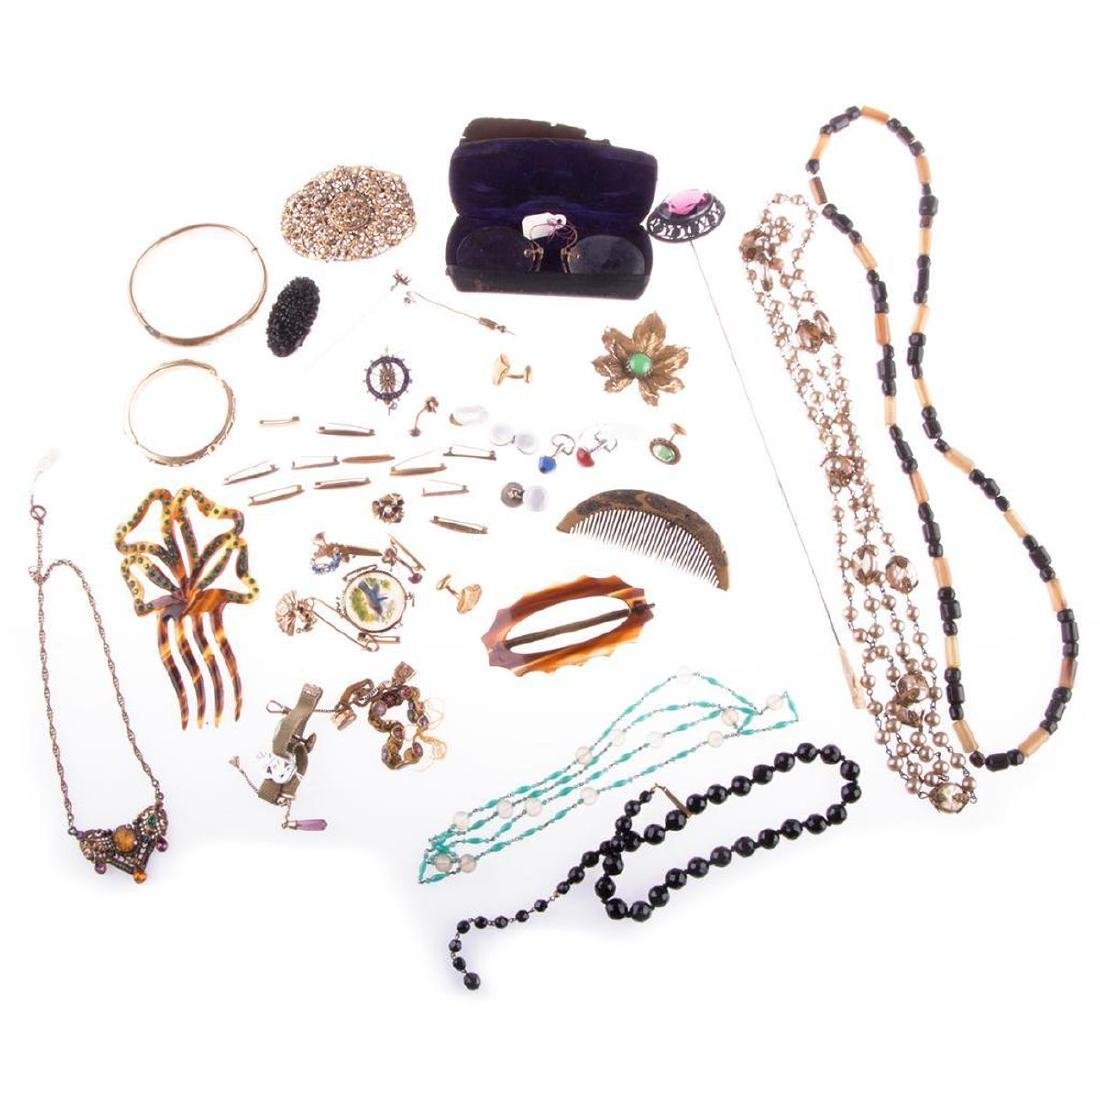 Collection of vintage costume jewelry and objects